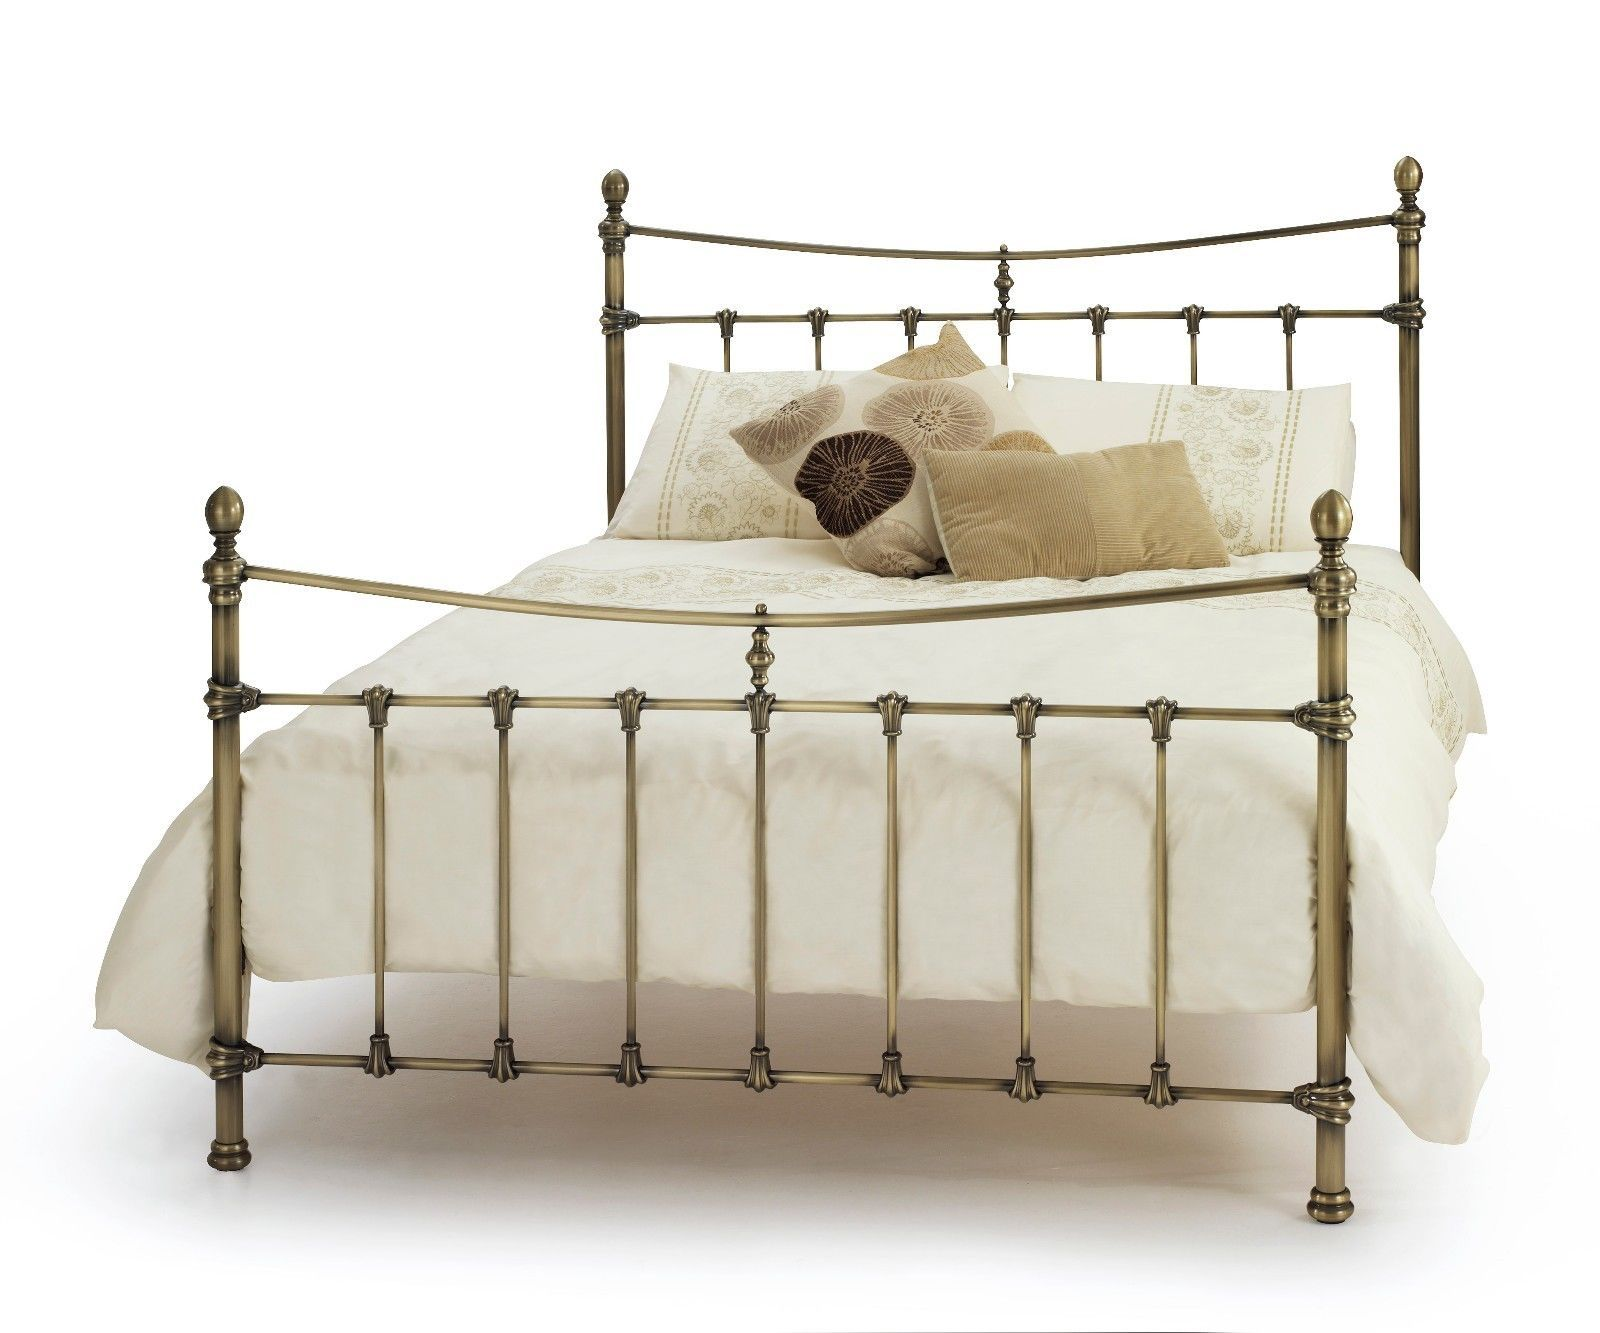 Estelle georgian quality metal bed #frame in antique #brass double ...